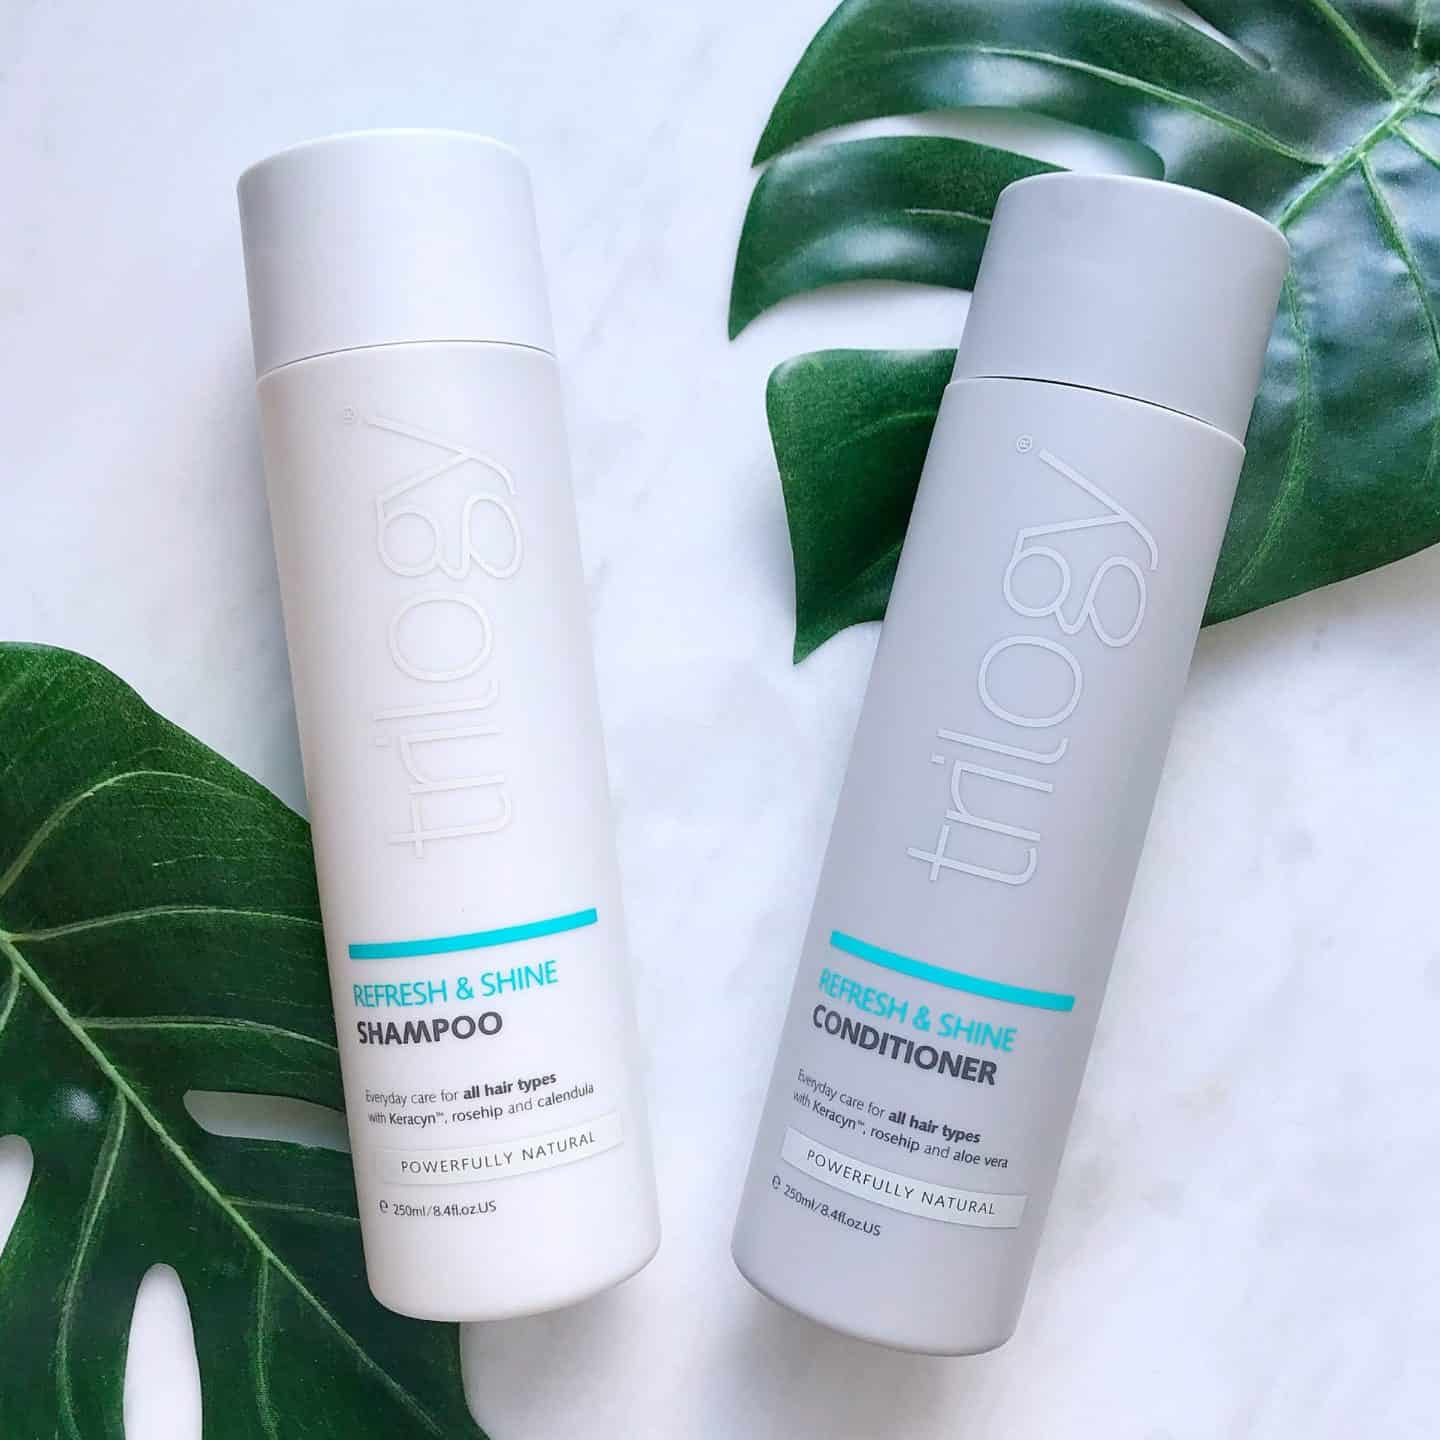 Trilogy Refresh and Shine Shampoo and Conditioner